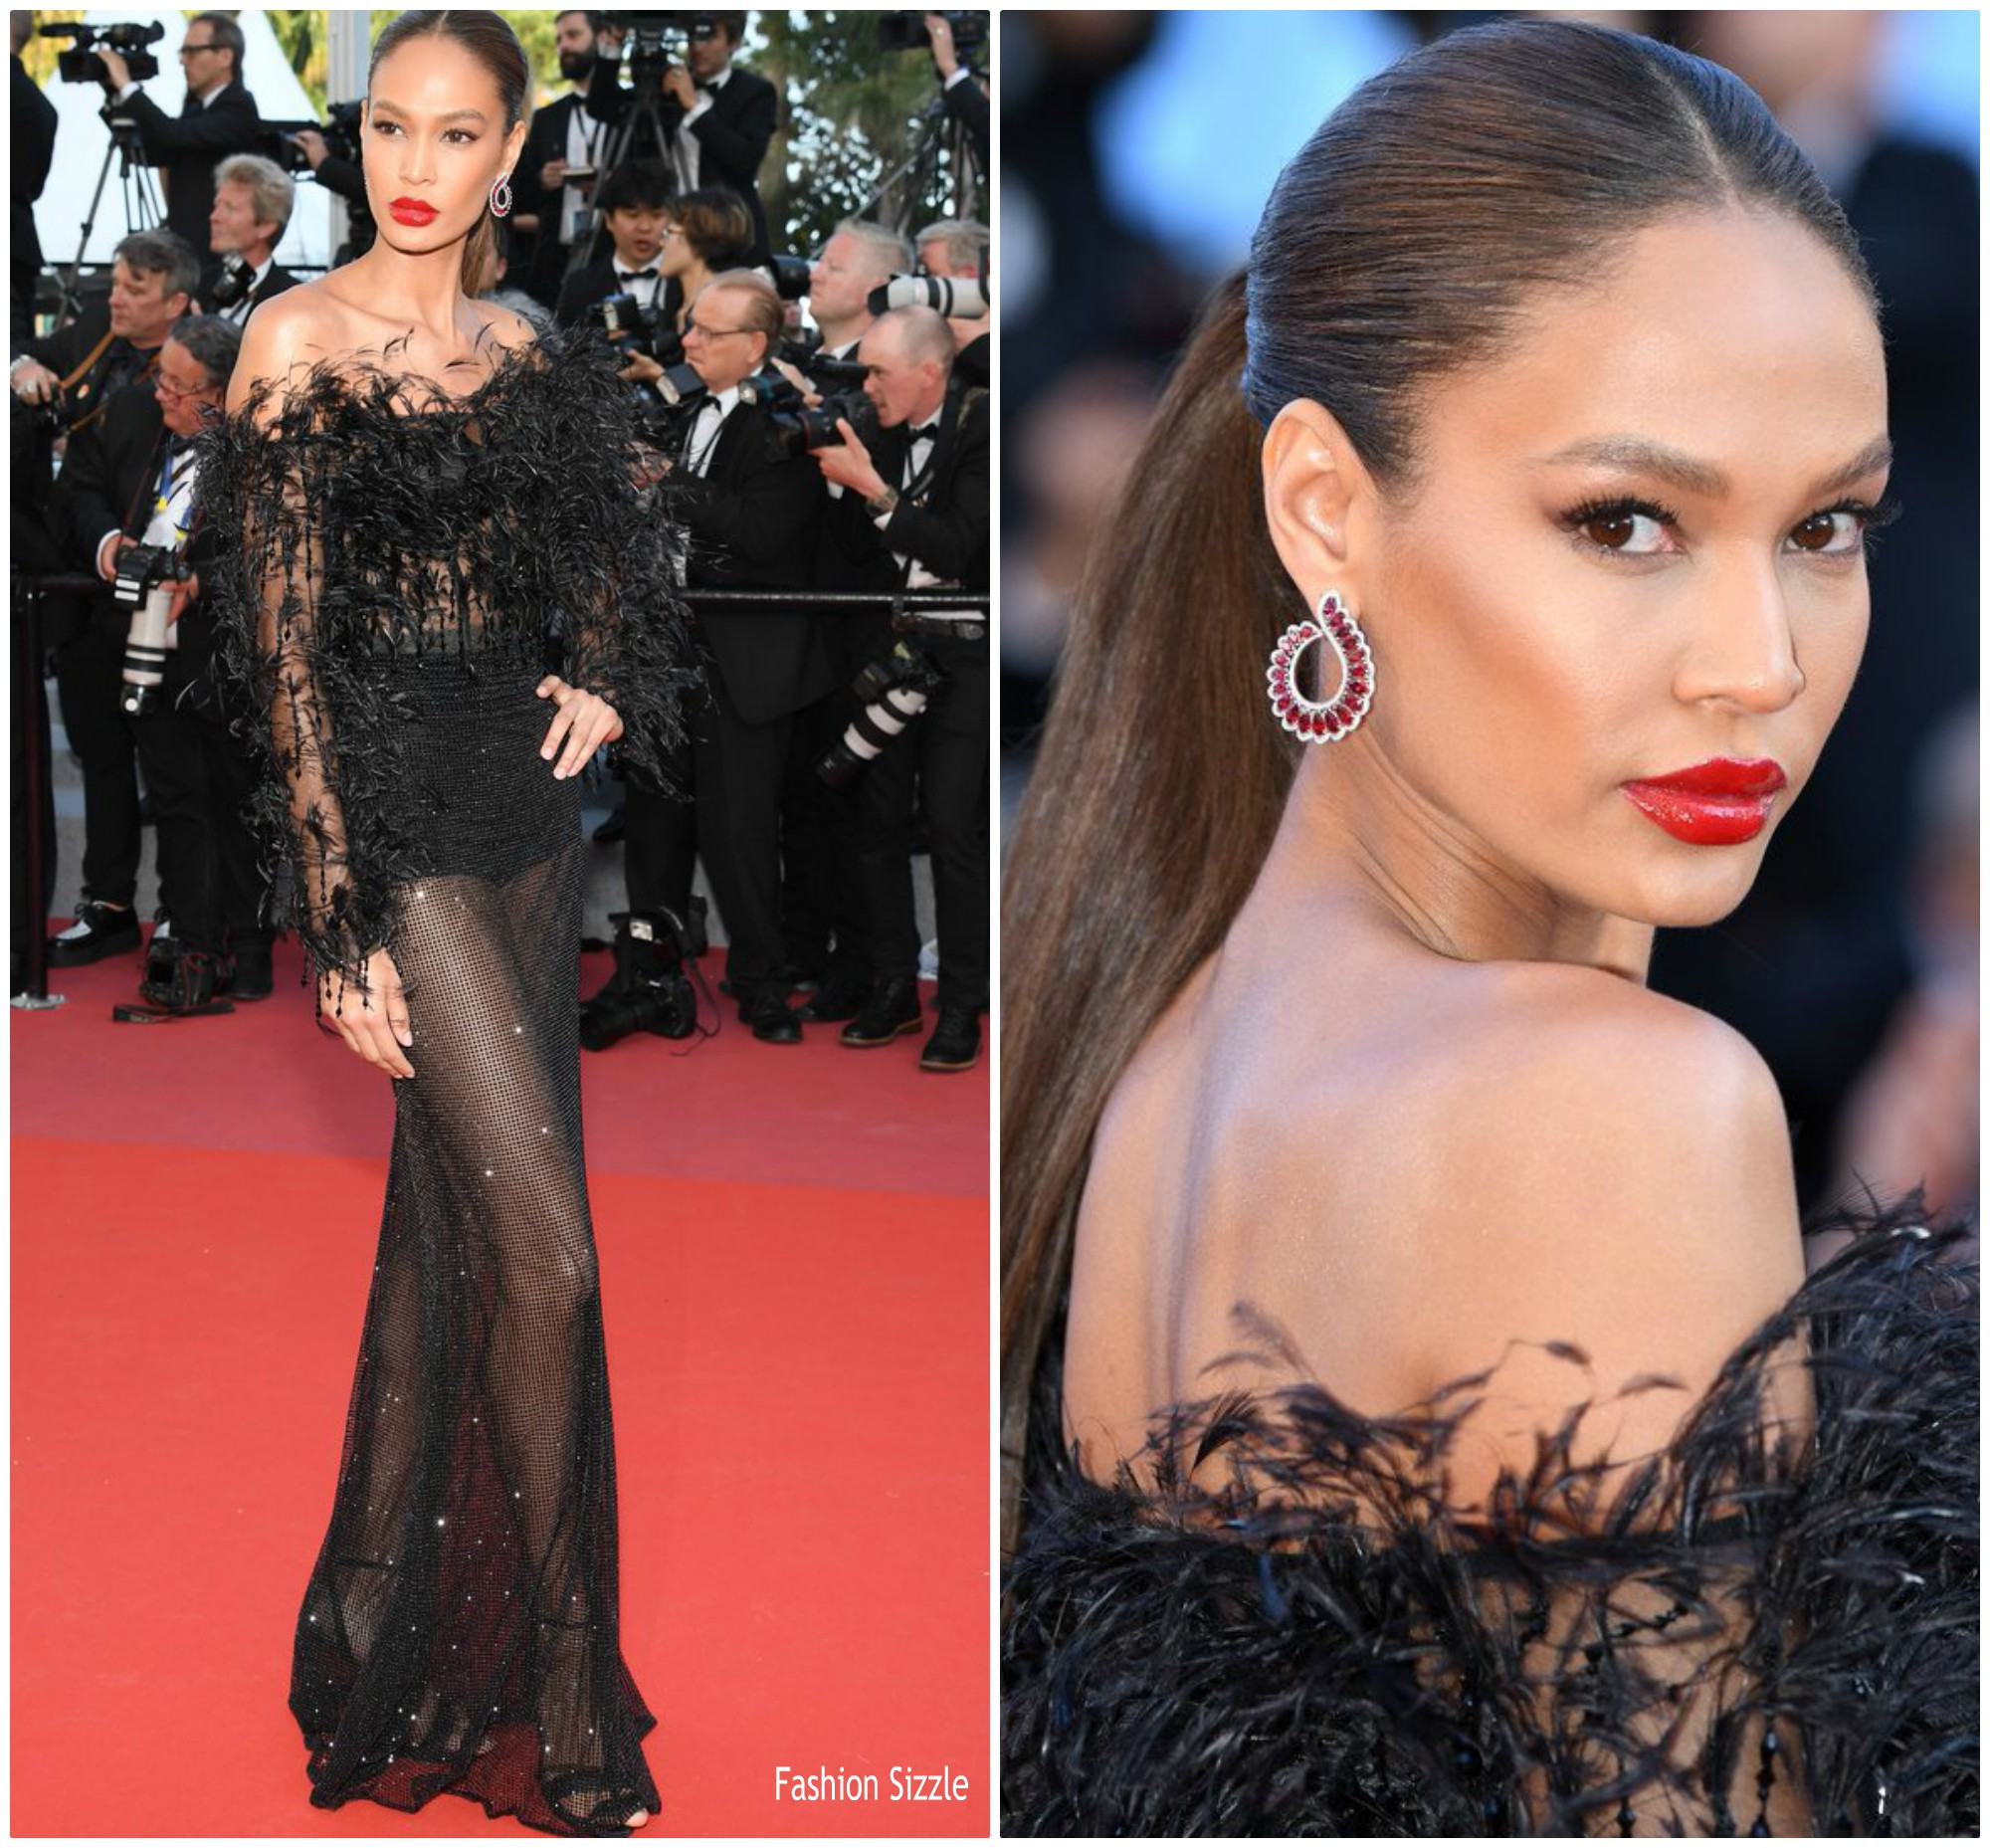 joan-smalls-in-roberto-cavalli-couture-girls-of-the-sun-les-filles-du-soleil-cannes-film-festival-premiere